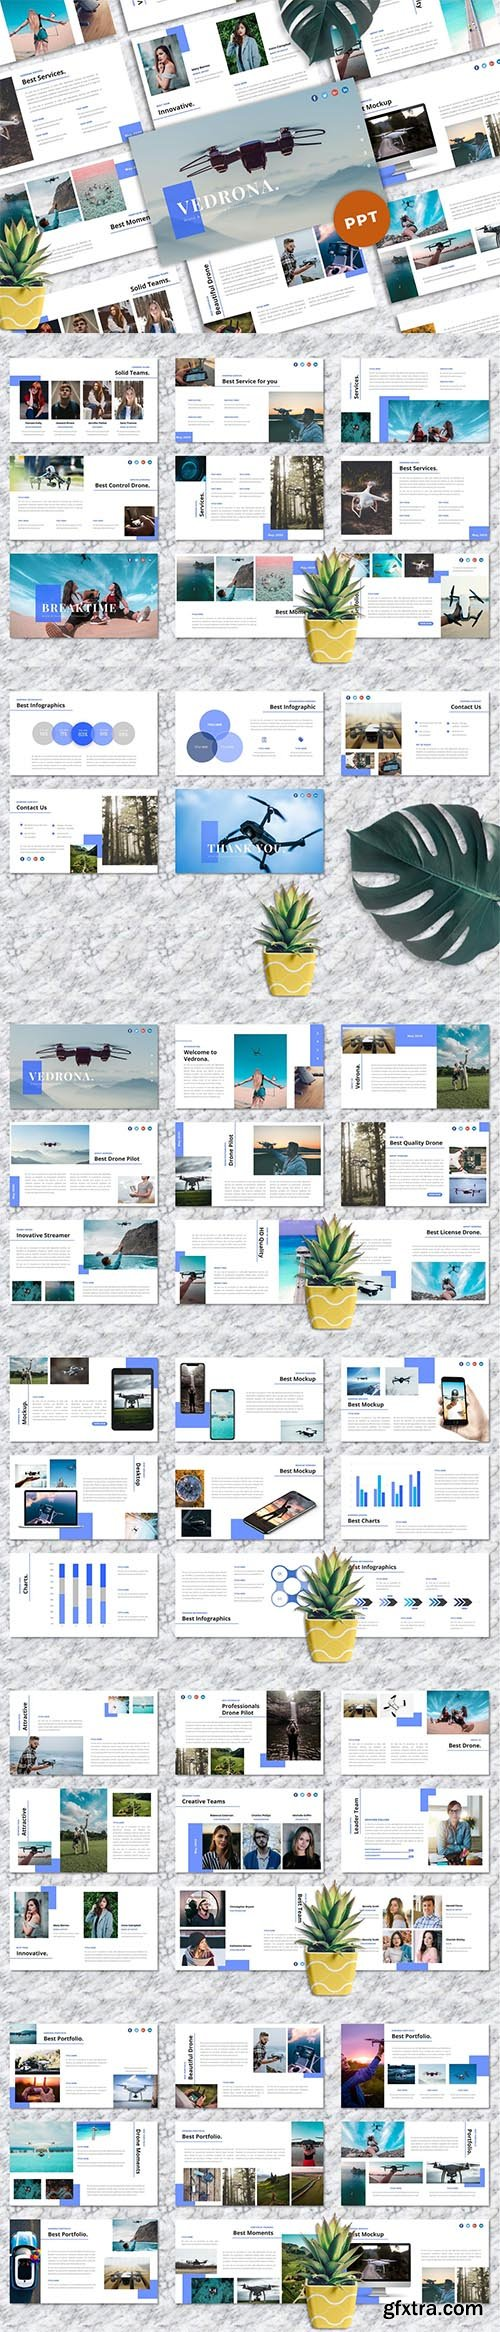 Vedrona - Drone & Photography PowerPoint Template